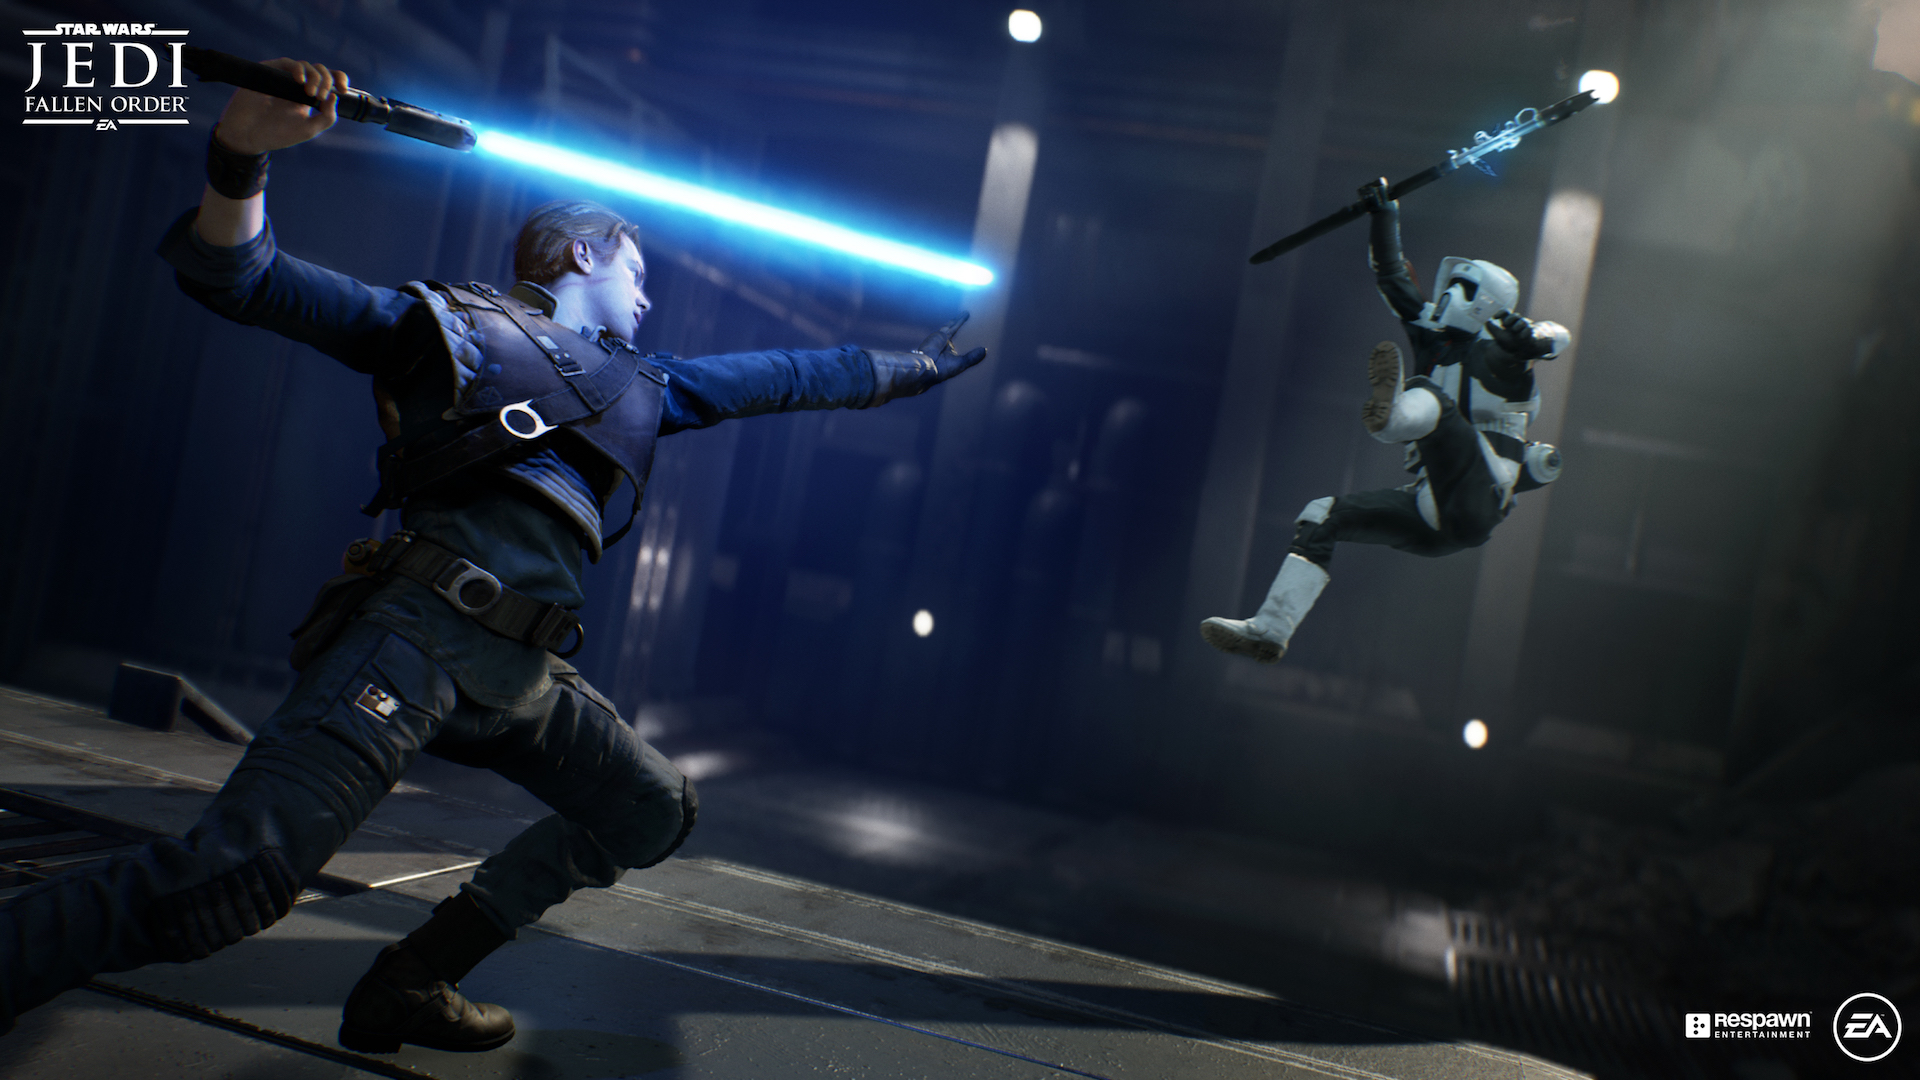 Star Wars Jedi Fallen Order S Black Friday Trailer Is Action Packed And Full Of Spoilers